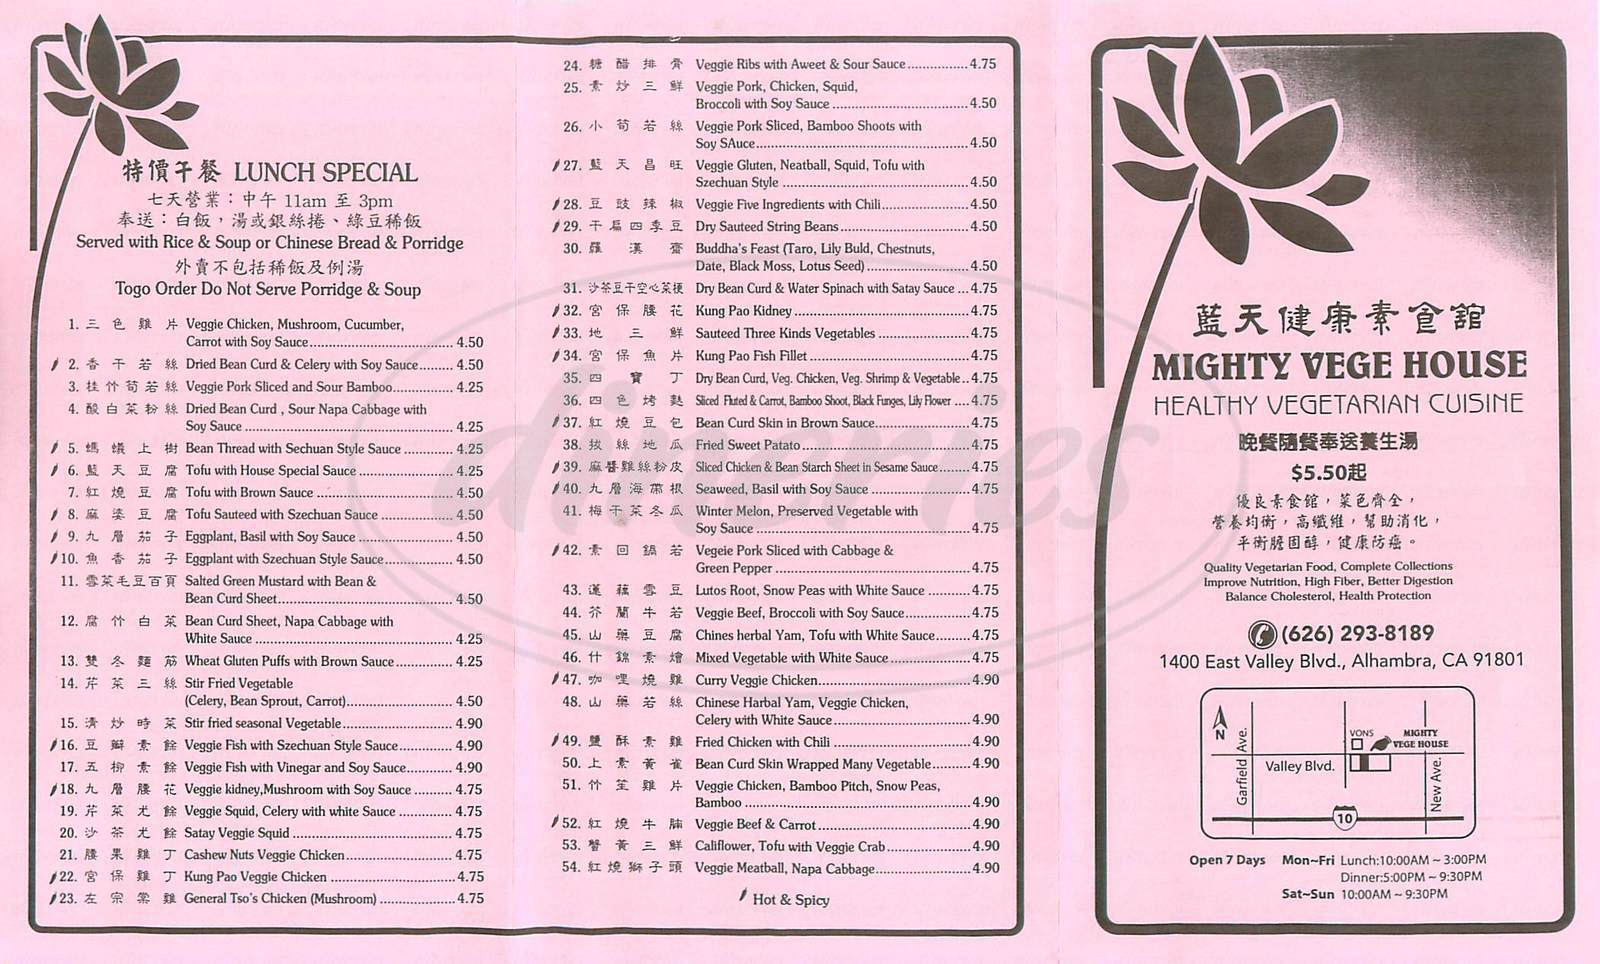 menu for Mighty Vege House